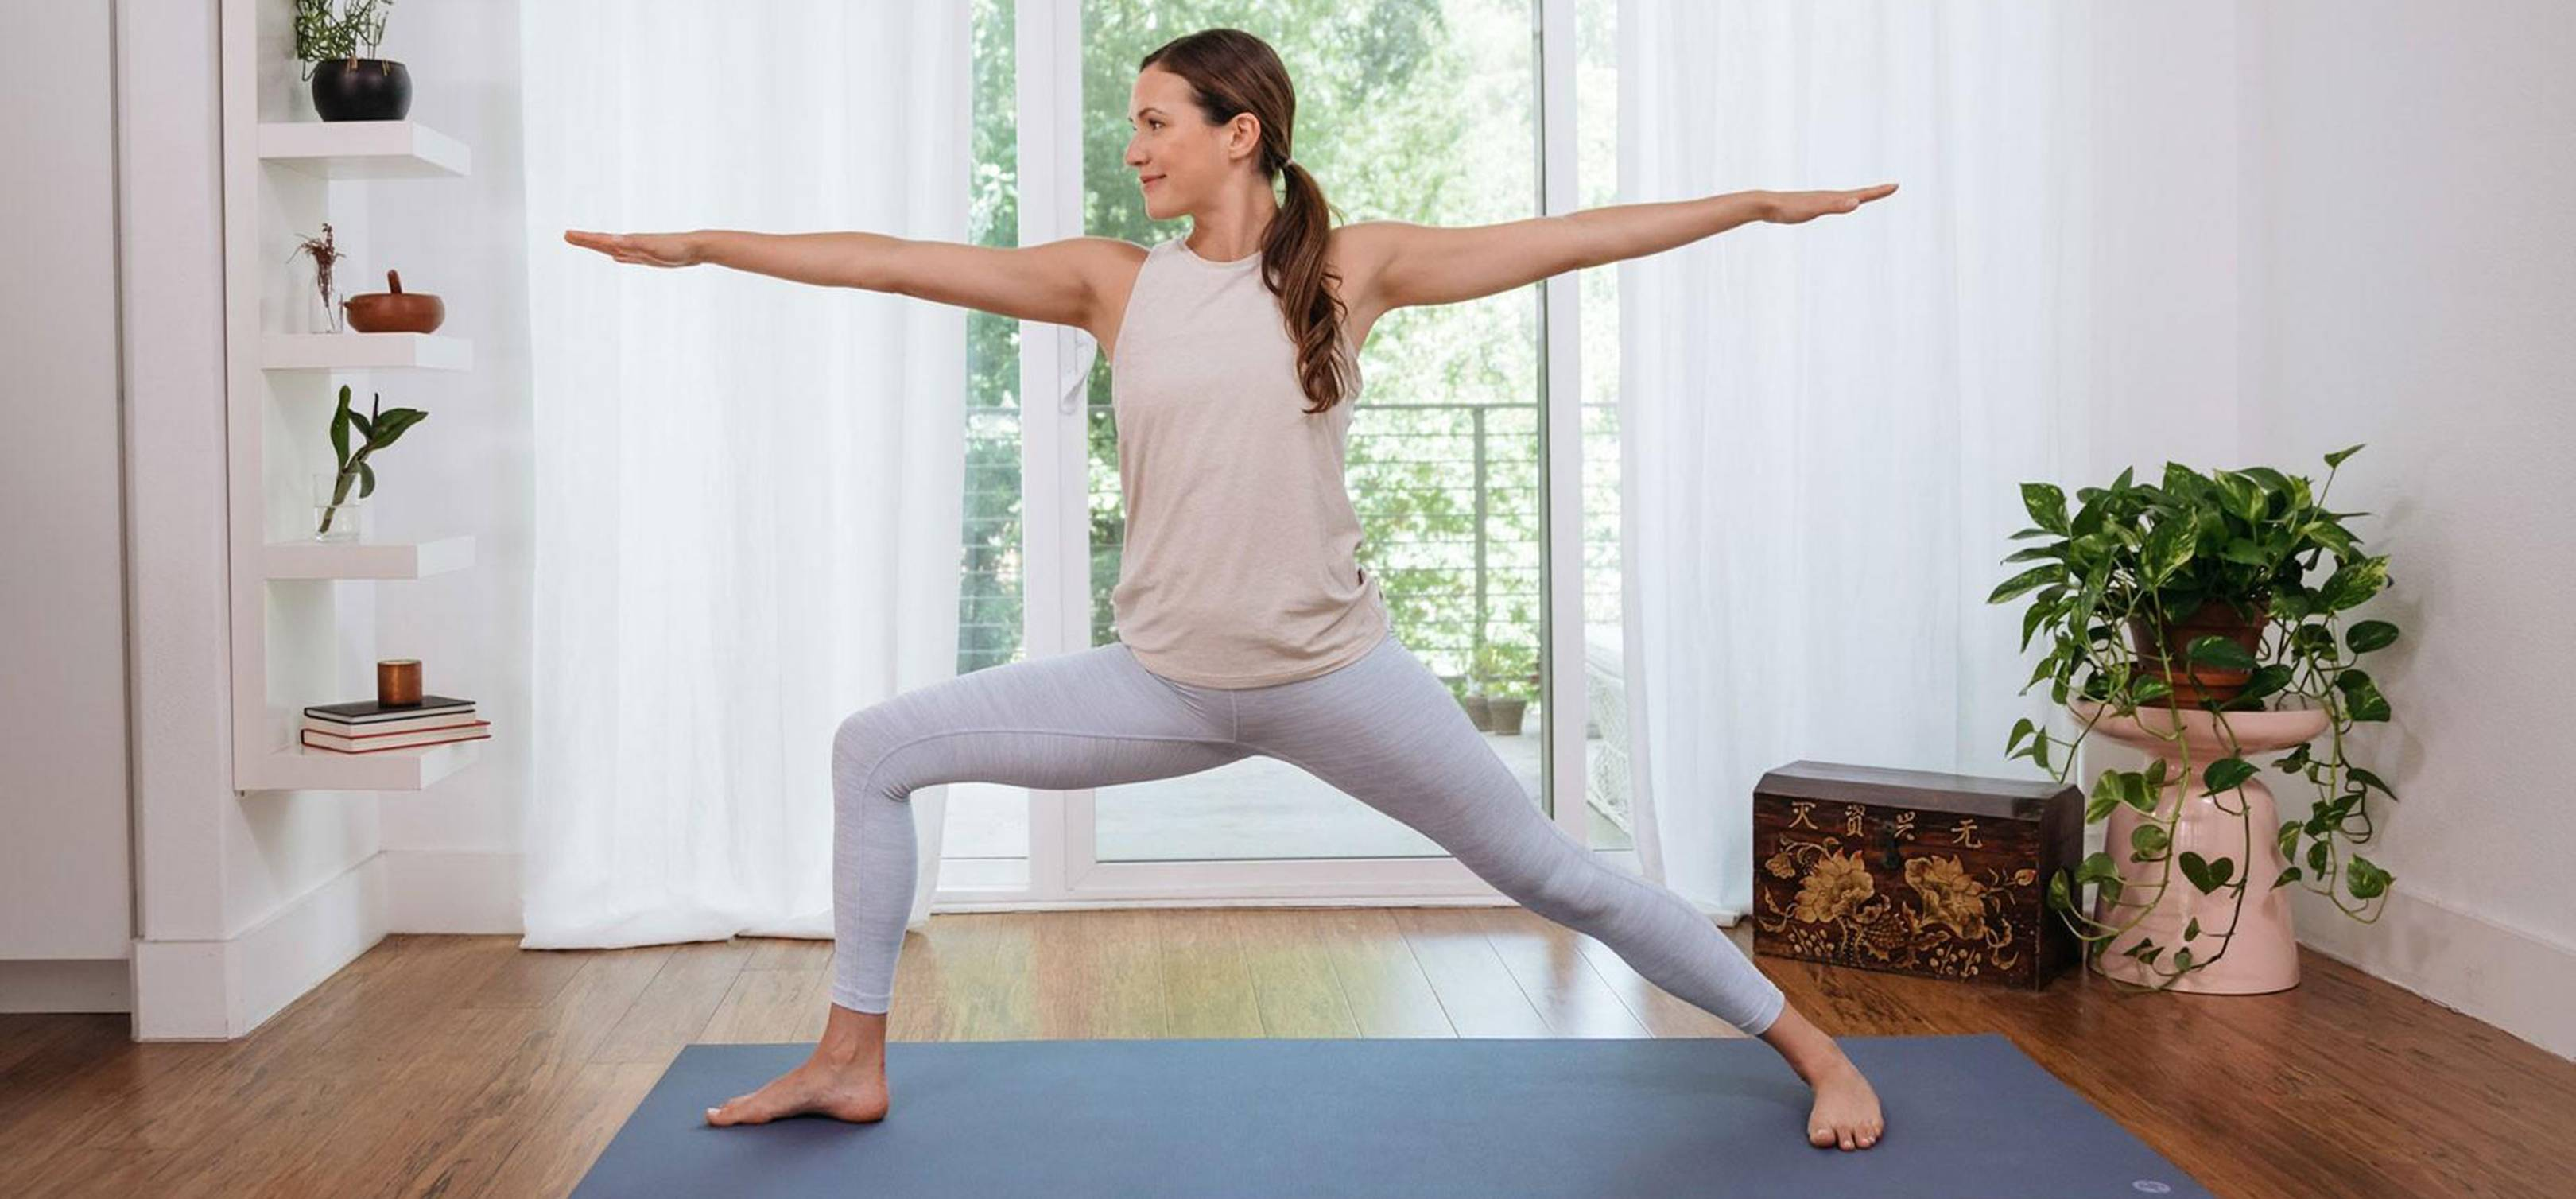 7 Best Online Yoga Classes To Stream At Home | Glamour UK